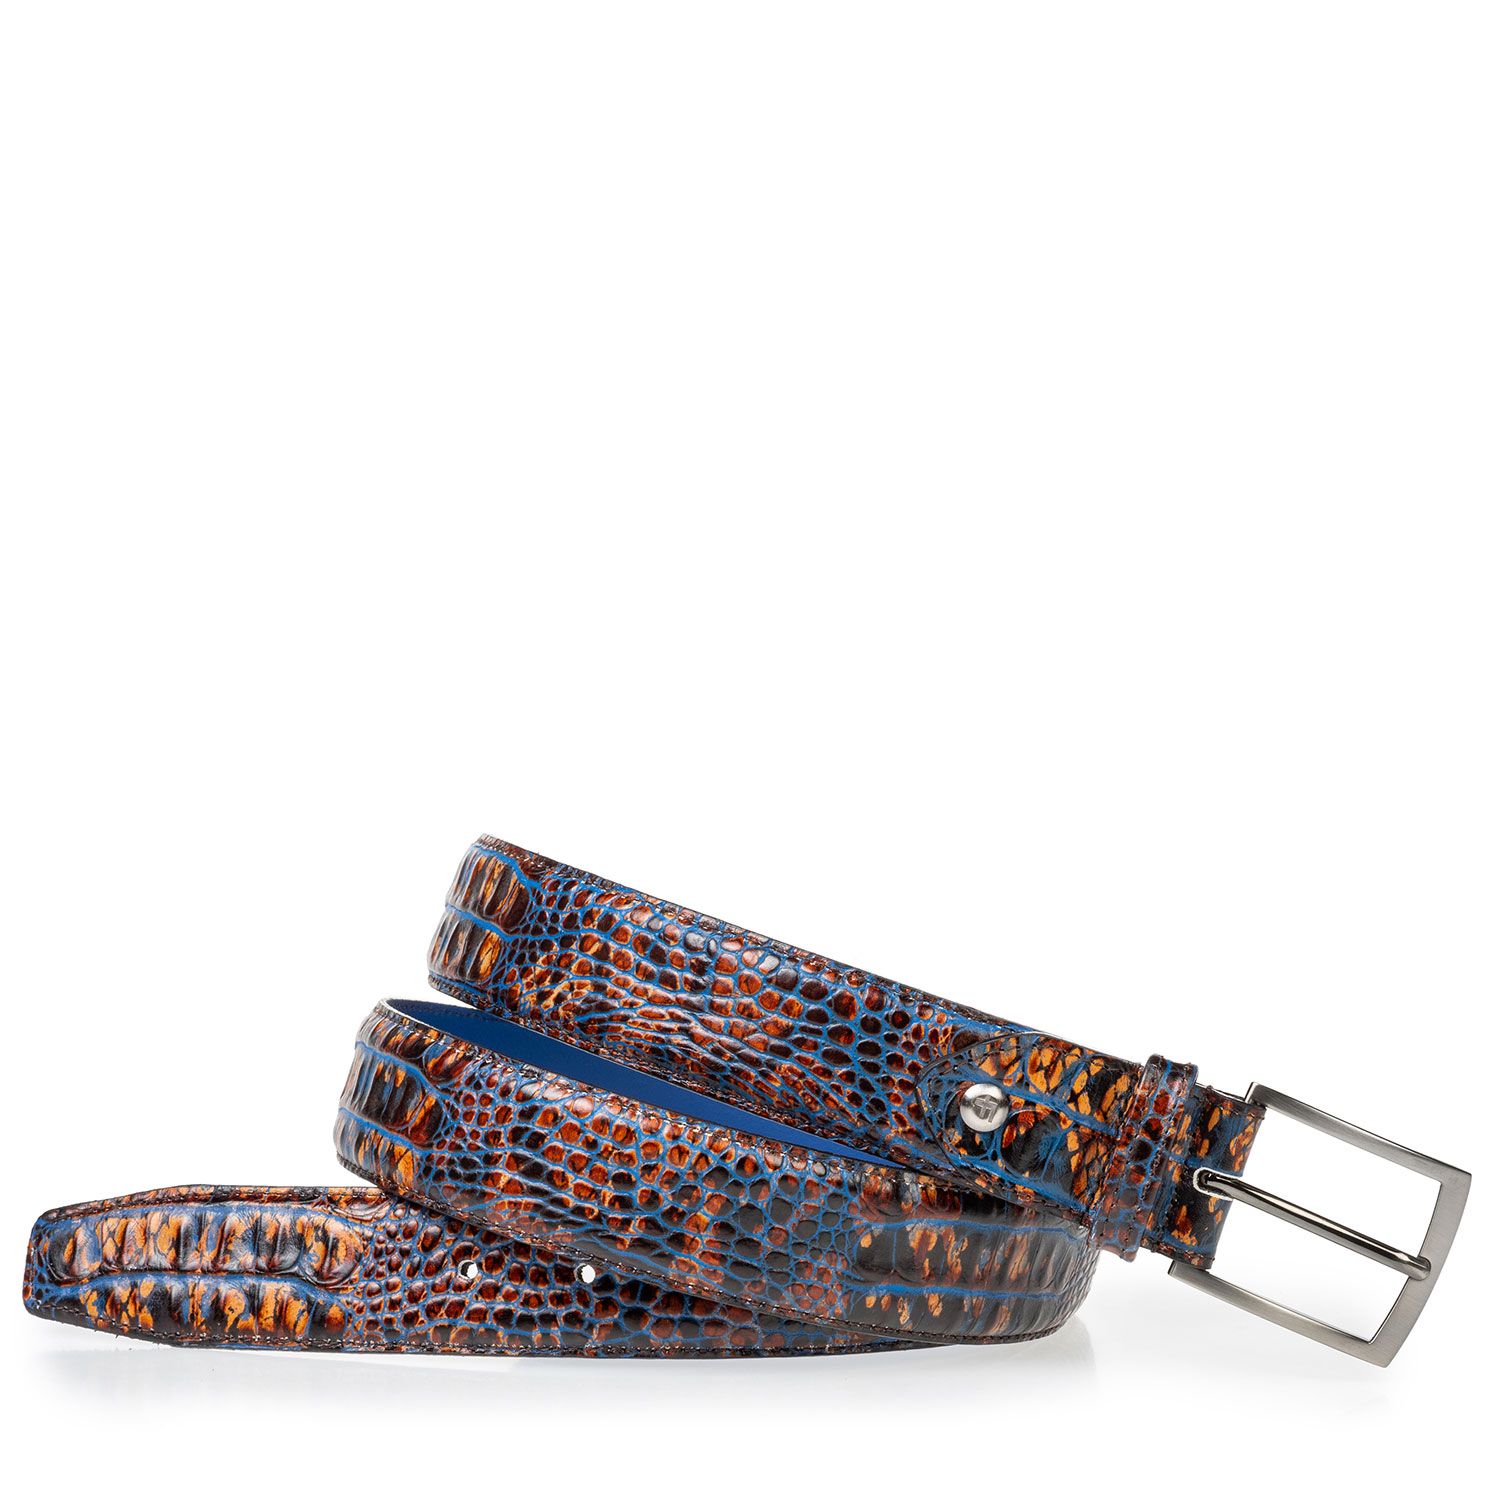 75203/24 - Leather belt croco print cognac